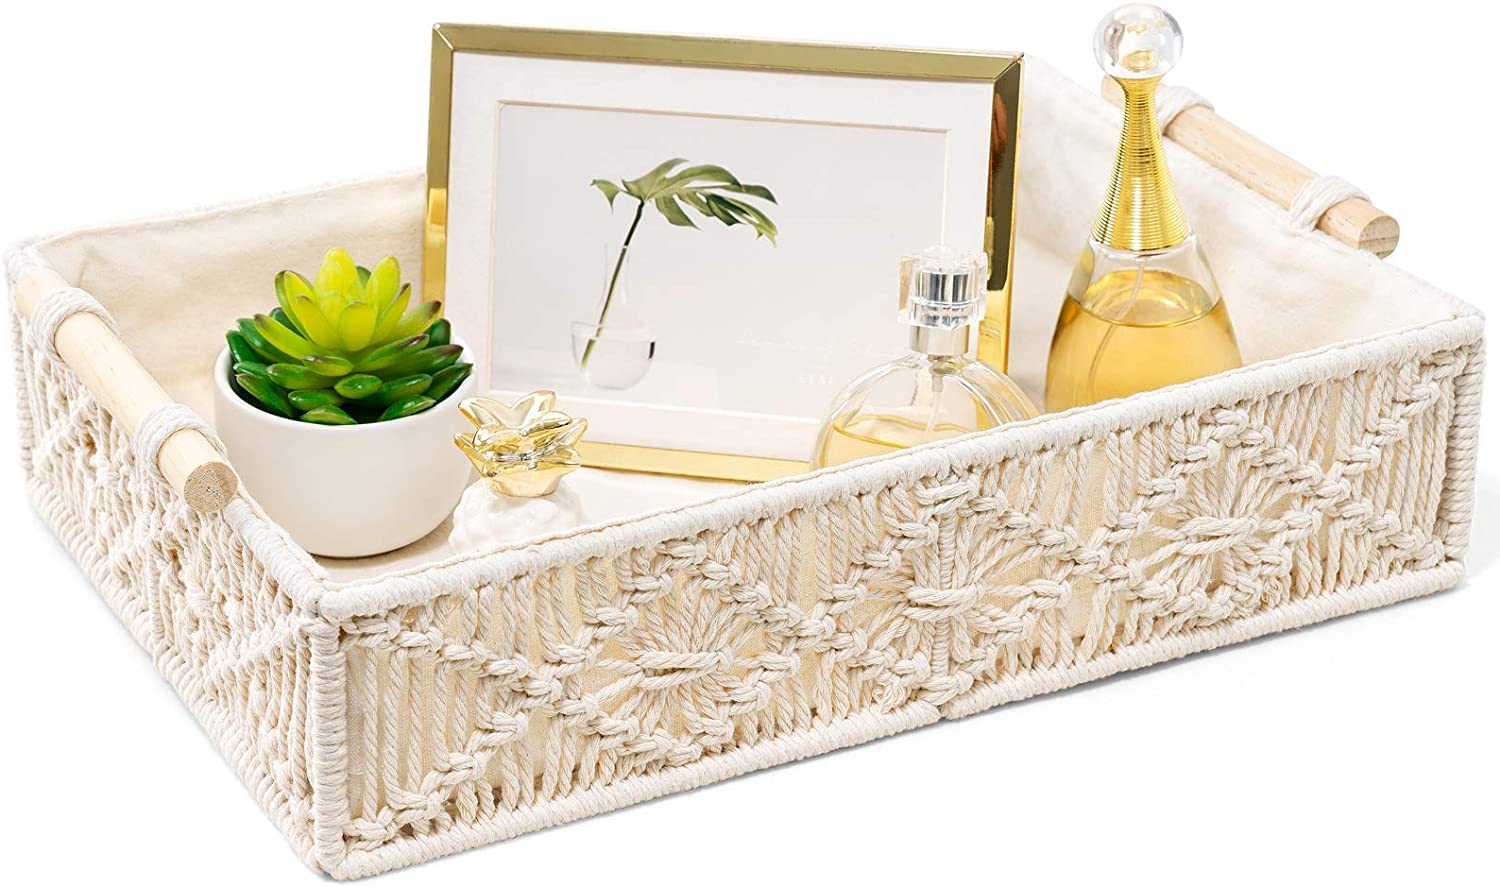 Mkono Macrame Decorative Tray Boho Home Decor Basket with Wooden Handles Handmade Woven Jewelry Perfume Makeup Storage Organizer for Vanity, Dresser, Countertop, Bedroom, Living Room, Ivory